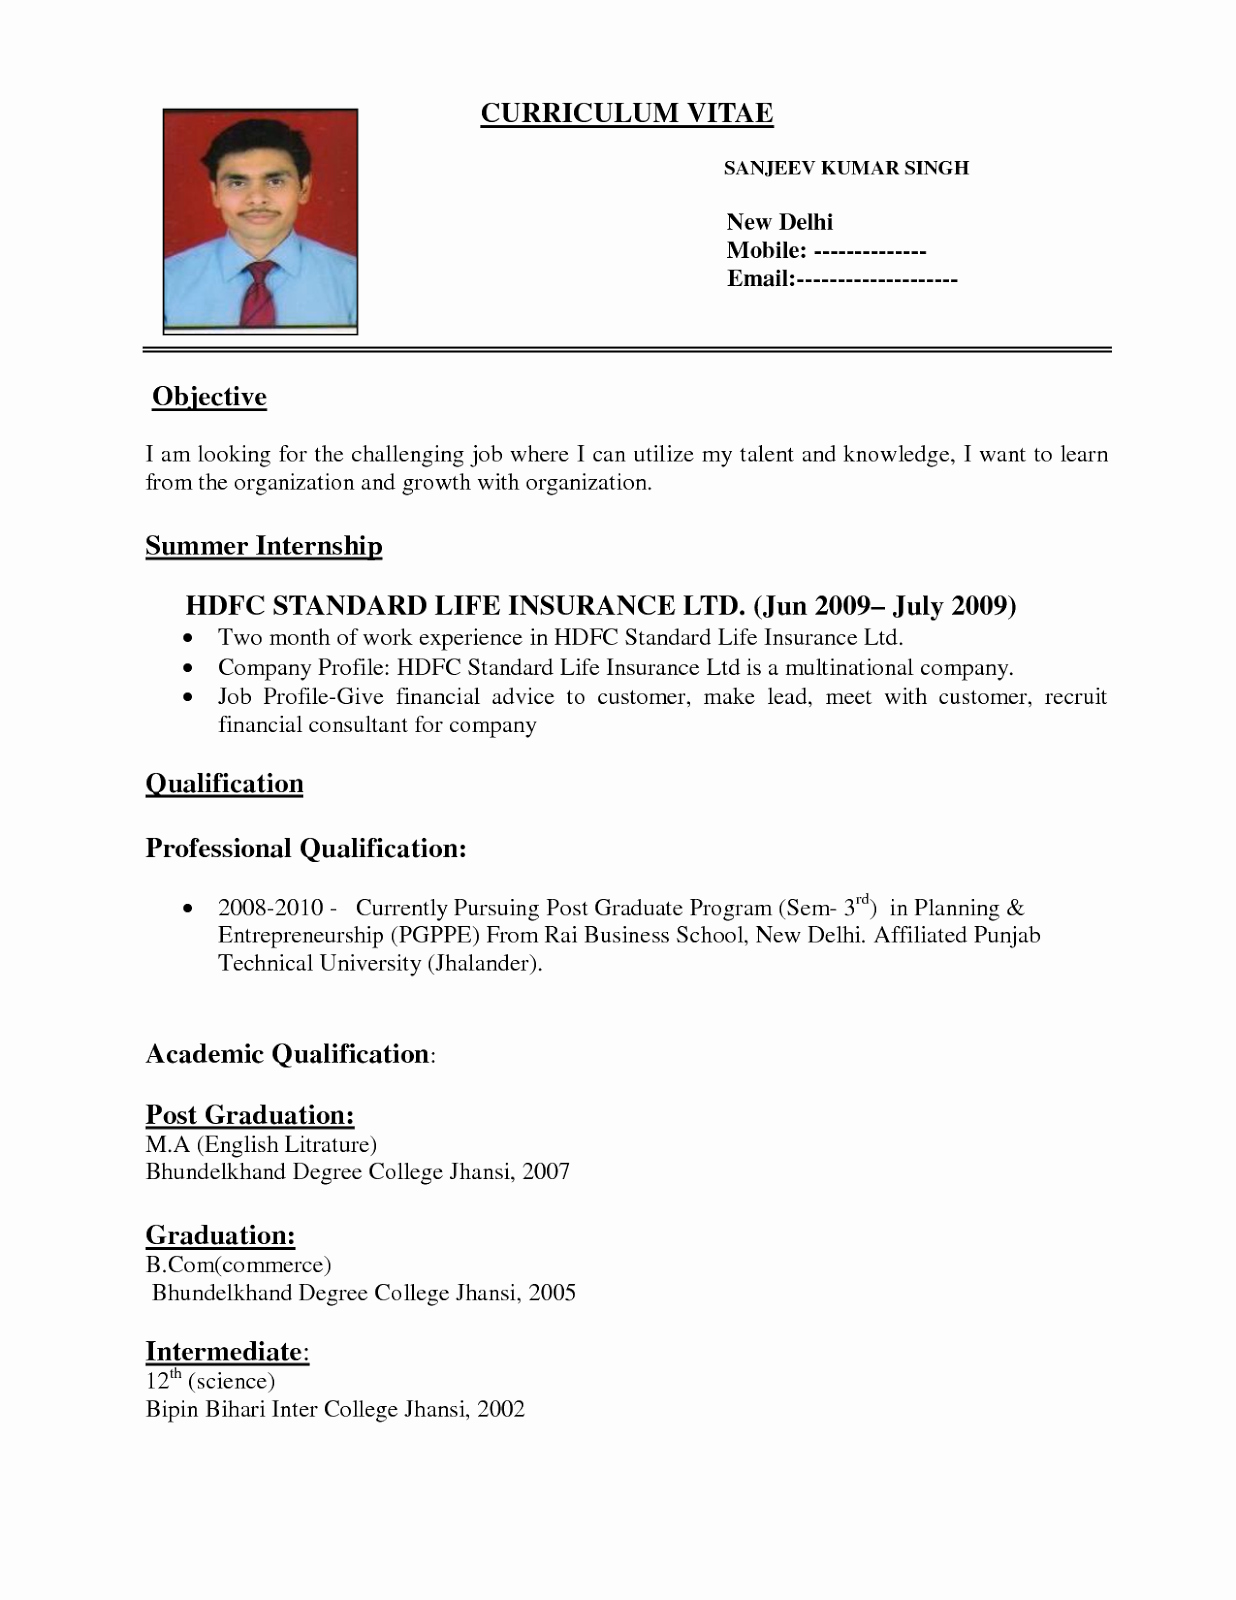 Resume format for Freshers Luxury 10 Fresher Resume Templates Download Pdf